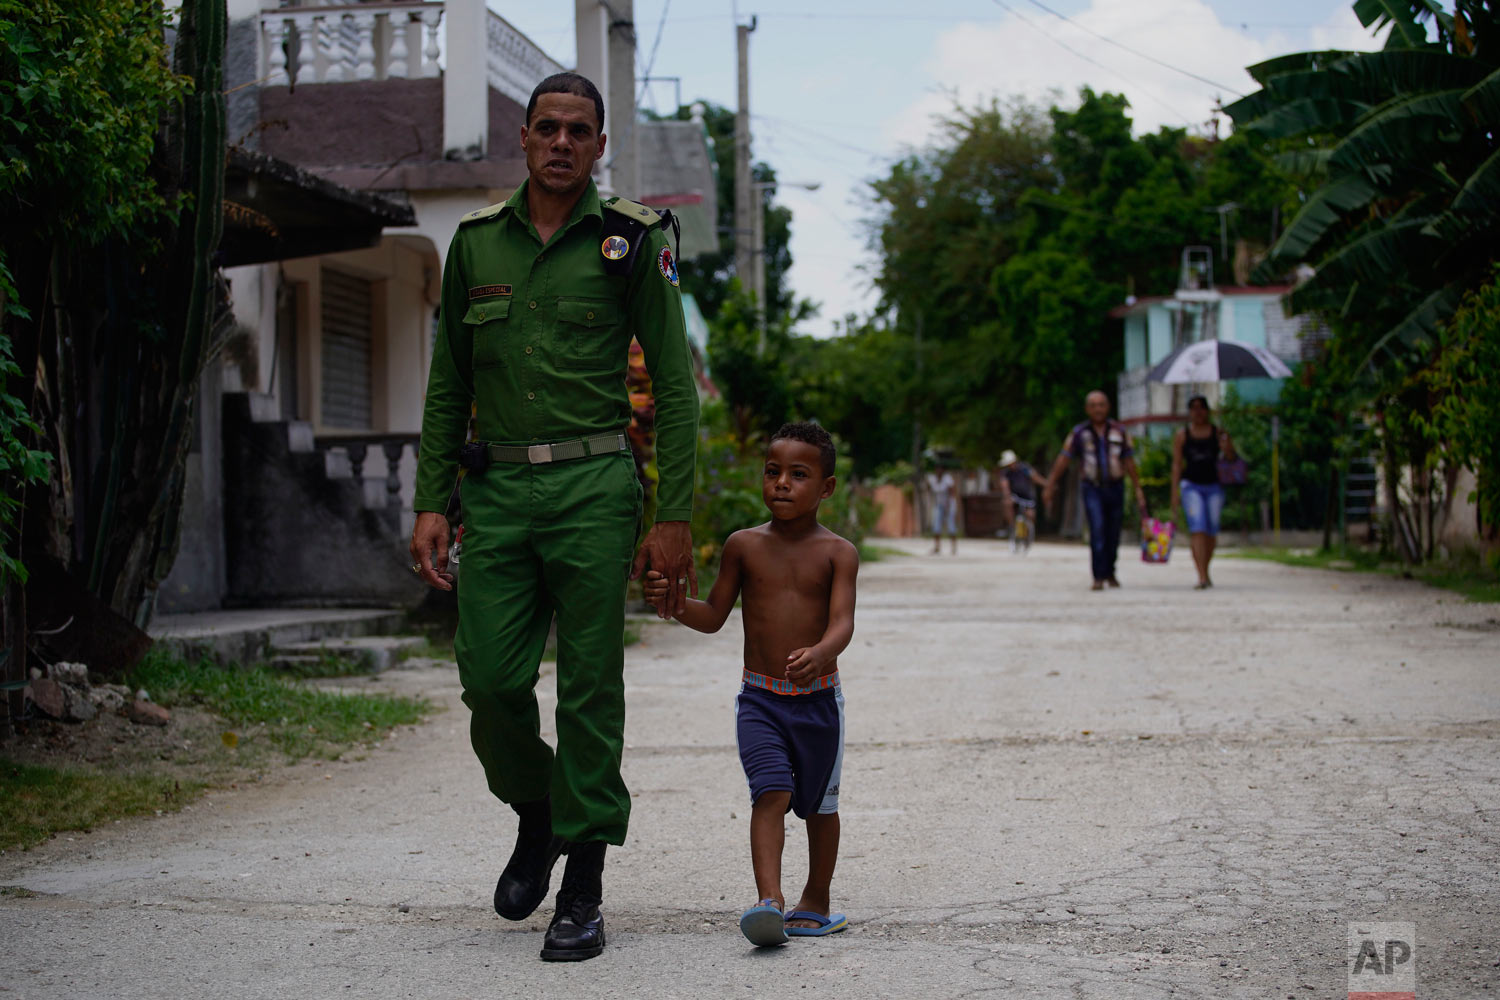 In this July 25, 2018 photo published in August, a Cuban special brigade first lieutenant police officer walks with his son to a neighborhood party where they will cook a large stew, in Guantanamo, Cuba, near the U.S. naval base. It is tradition in Cuba for neighbors to pool their efforts to cook a large stew, using pork. (AP Photo/Ramon Espinosa)